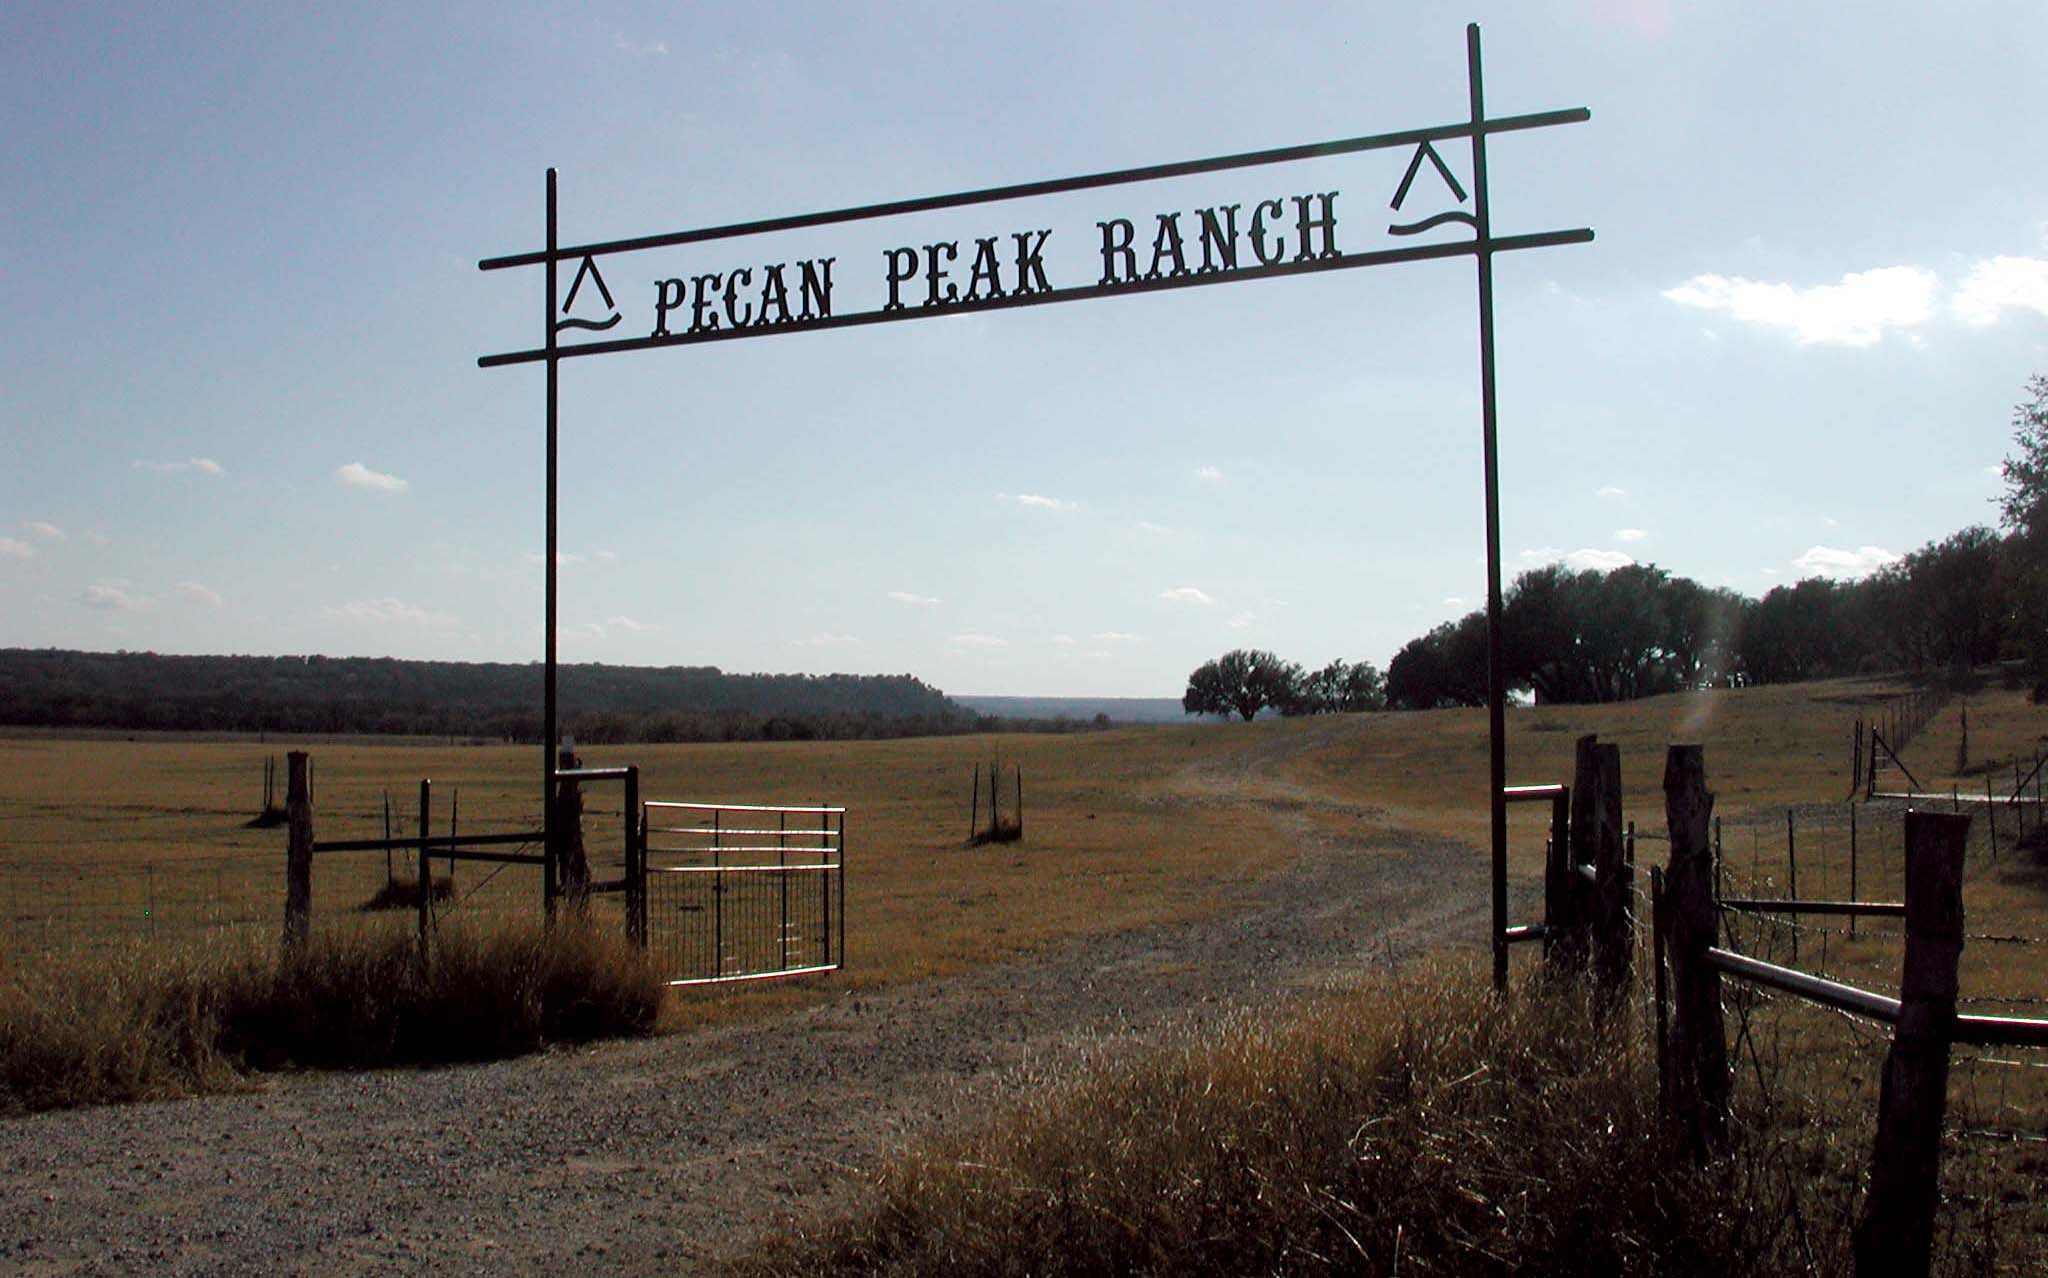 Metal sign over the front gate at Pecan Peak Ranch with Red Peak in the background.